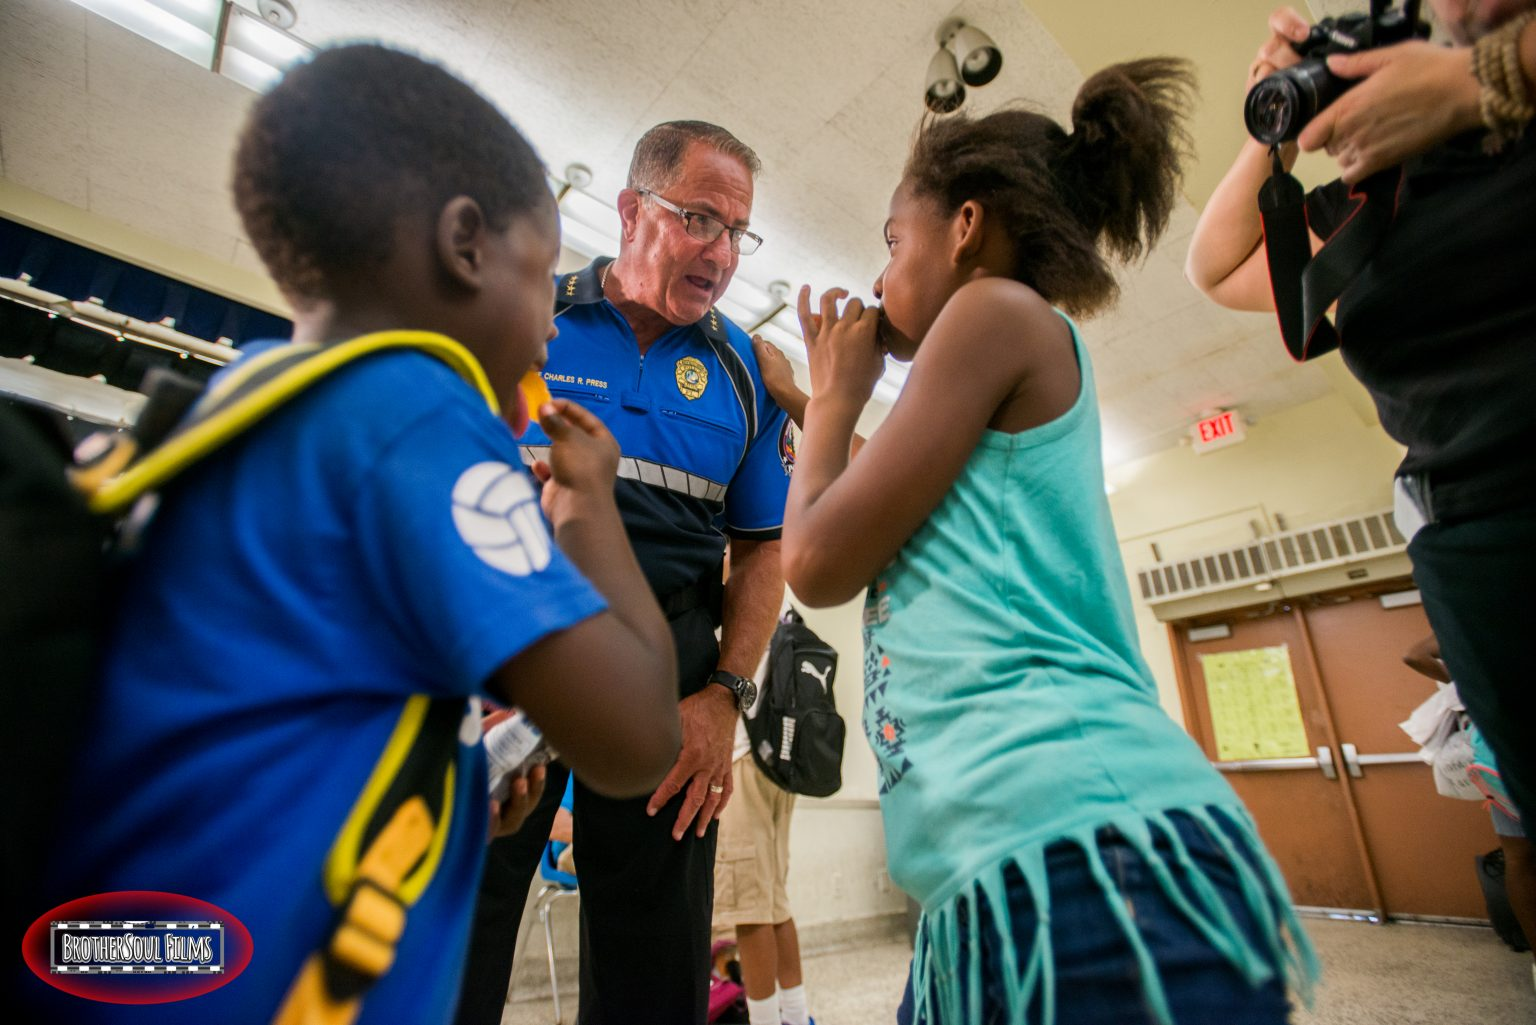 Police chief joins forces with BrotherSoul Films to bridge the gap between the black and blue communities